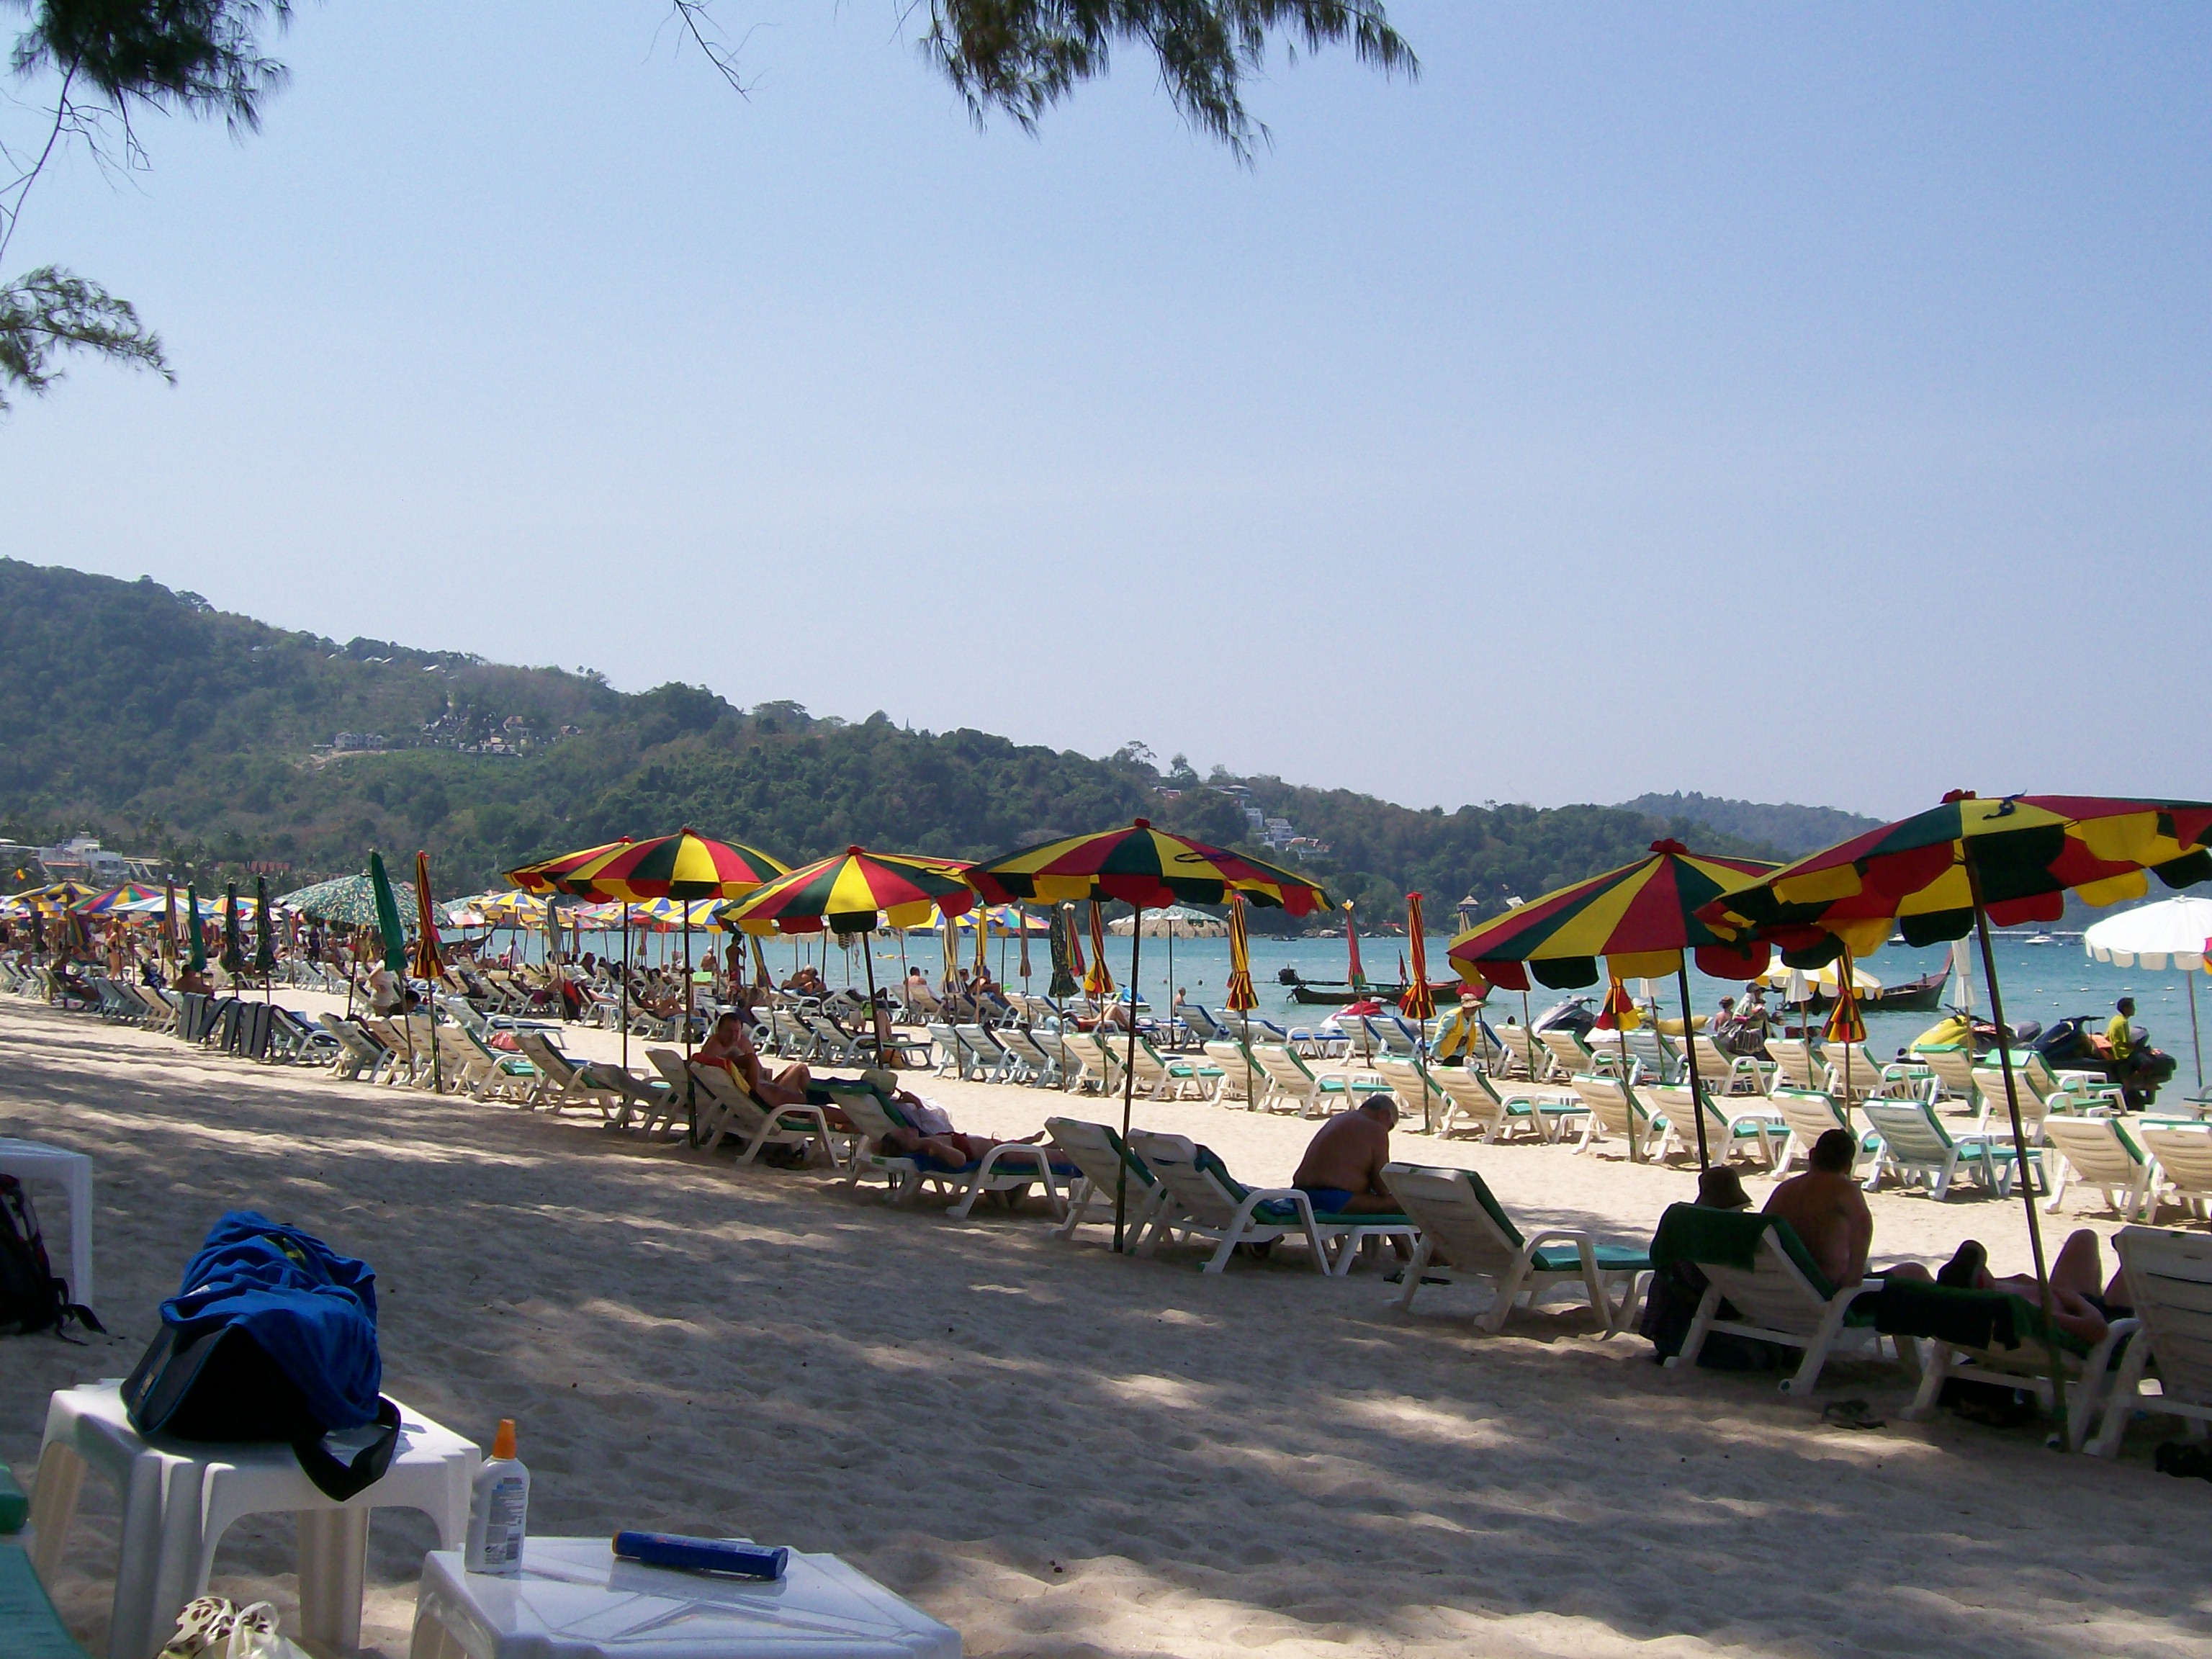 Patong Beach with loungers